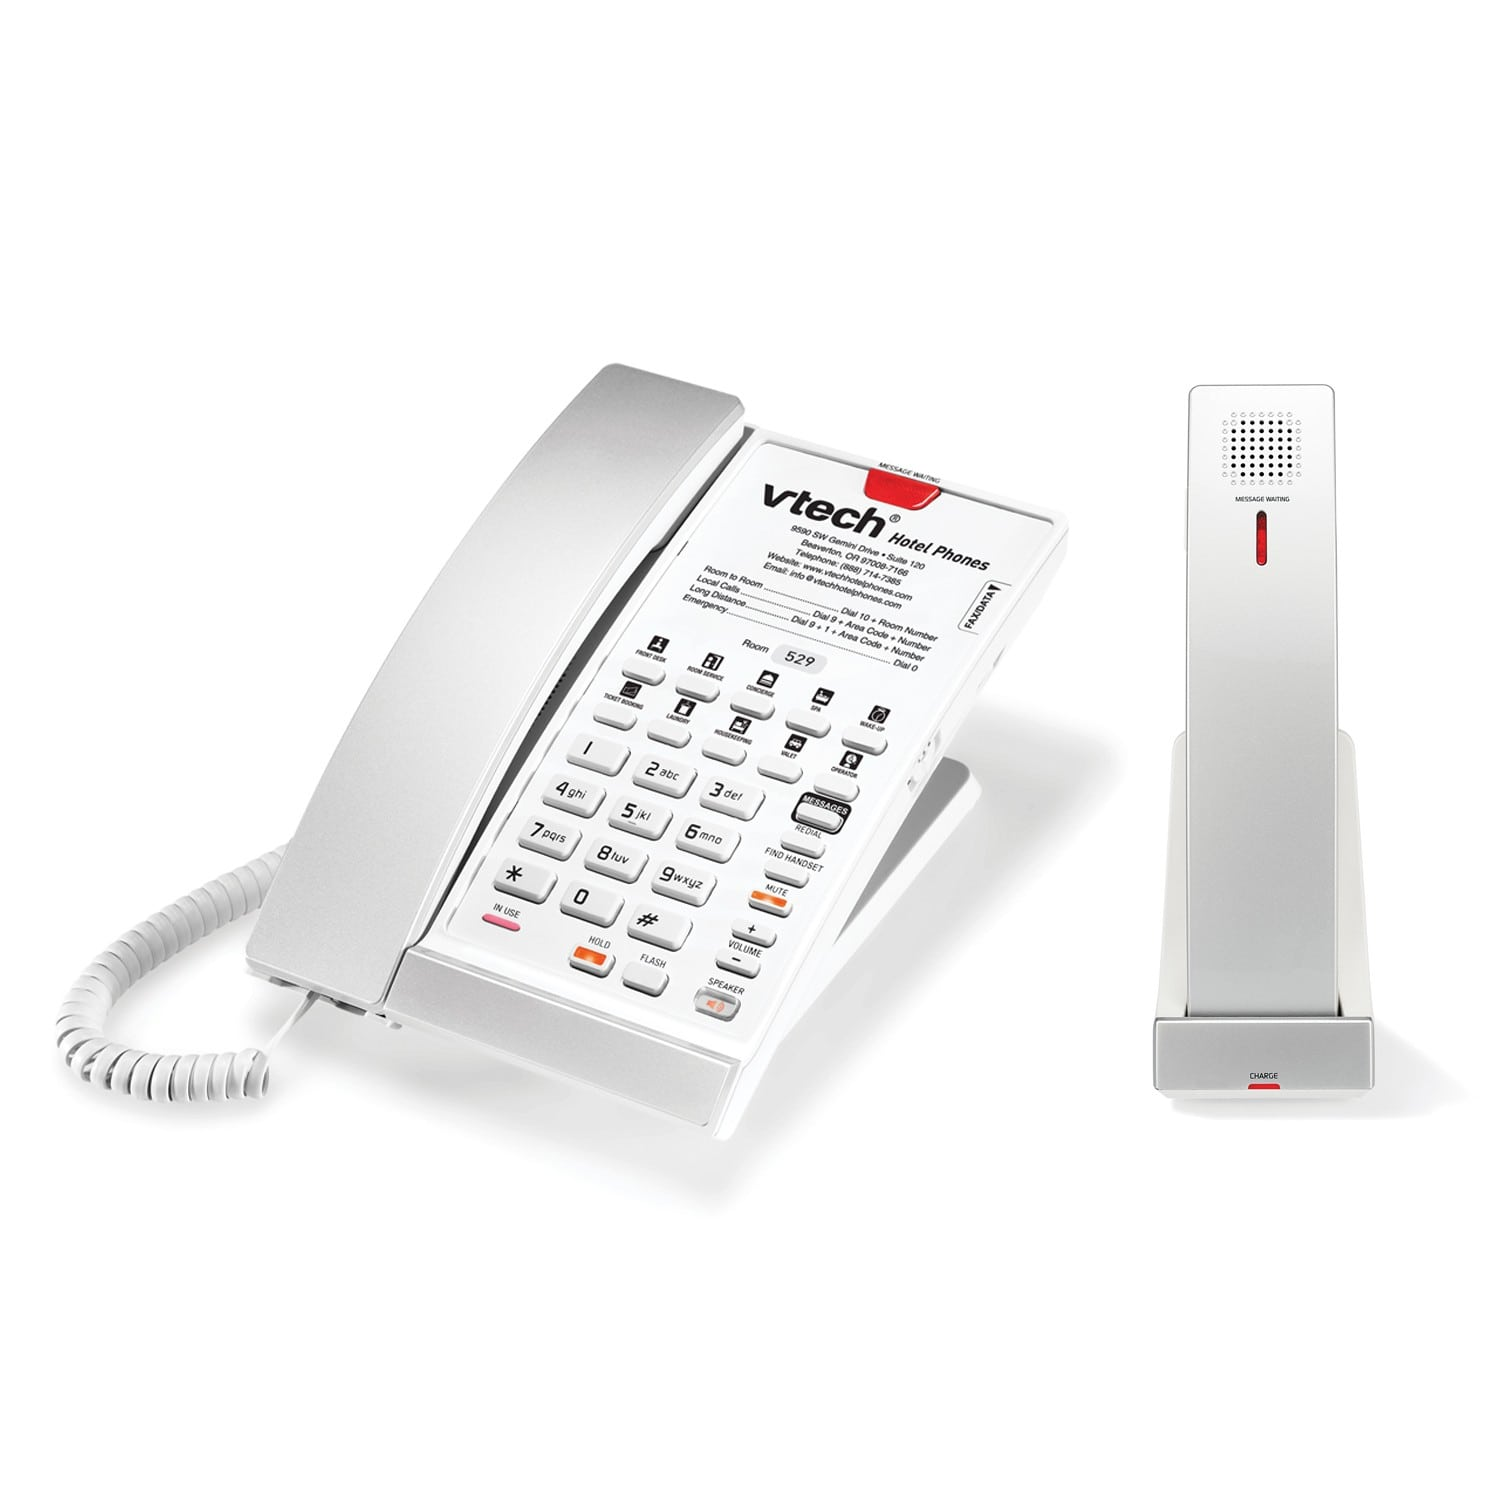 Image of Contemporary Analog Master Corded-Cordless Phone with Accessory Handset | CTM-A2510-USB Silver & Pearl